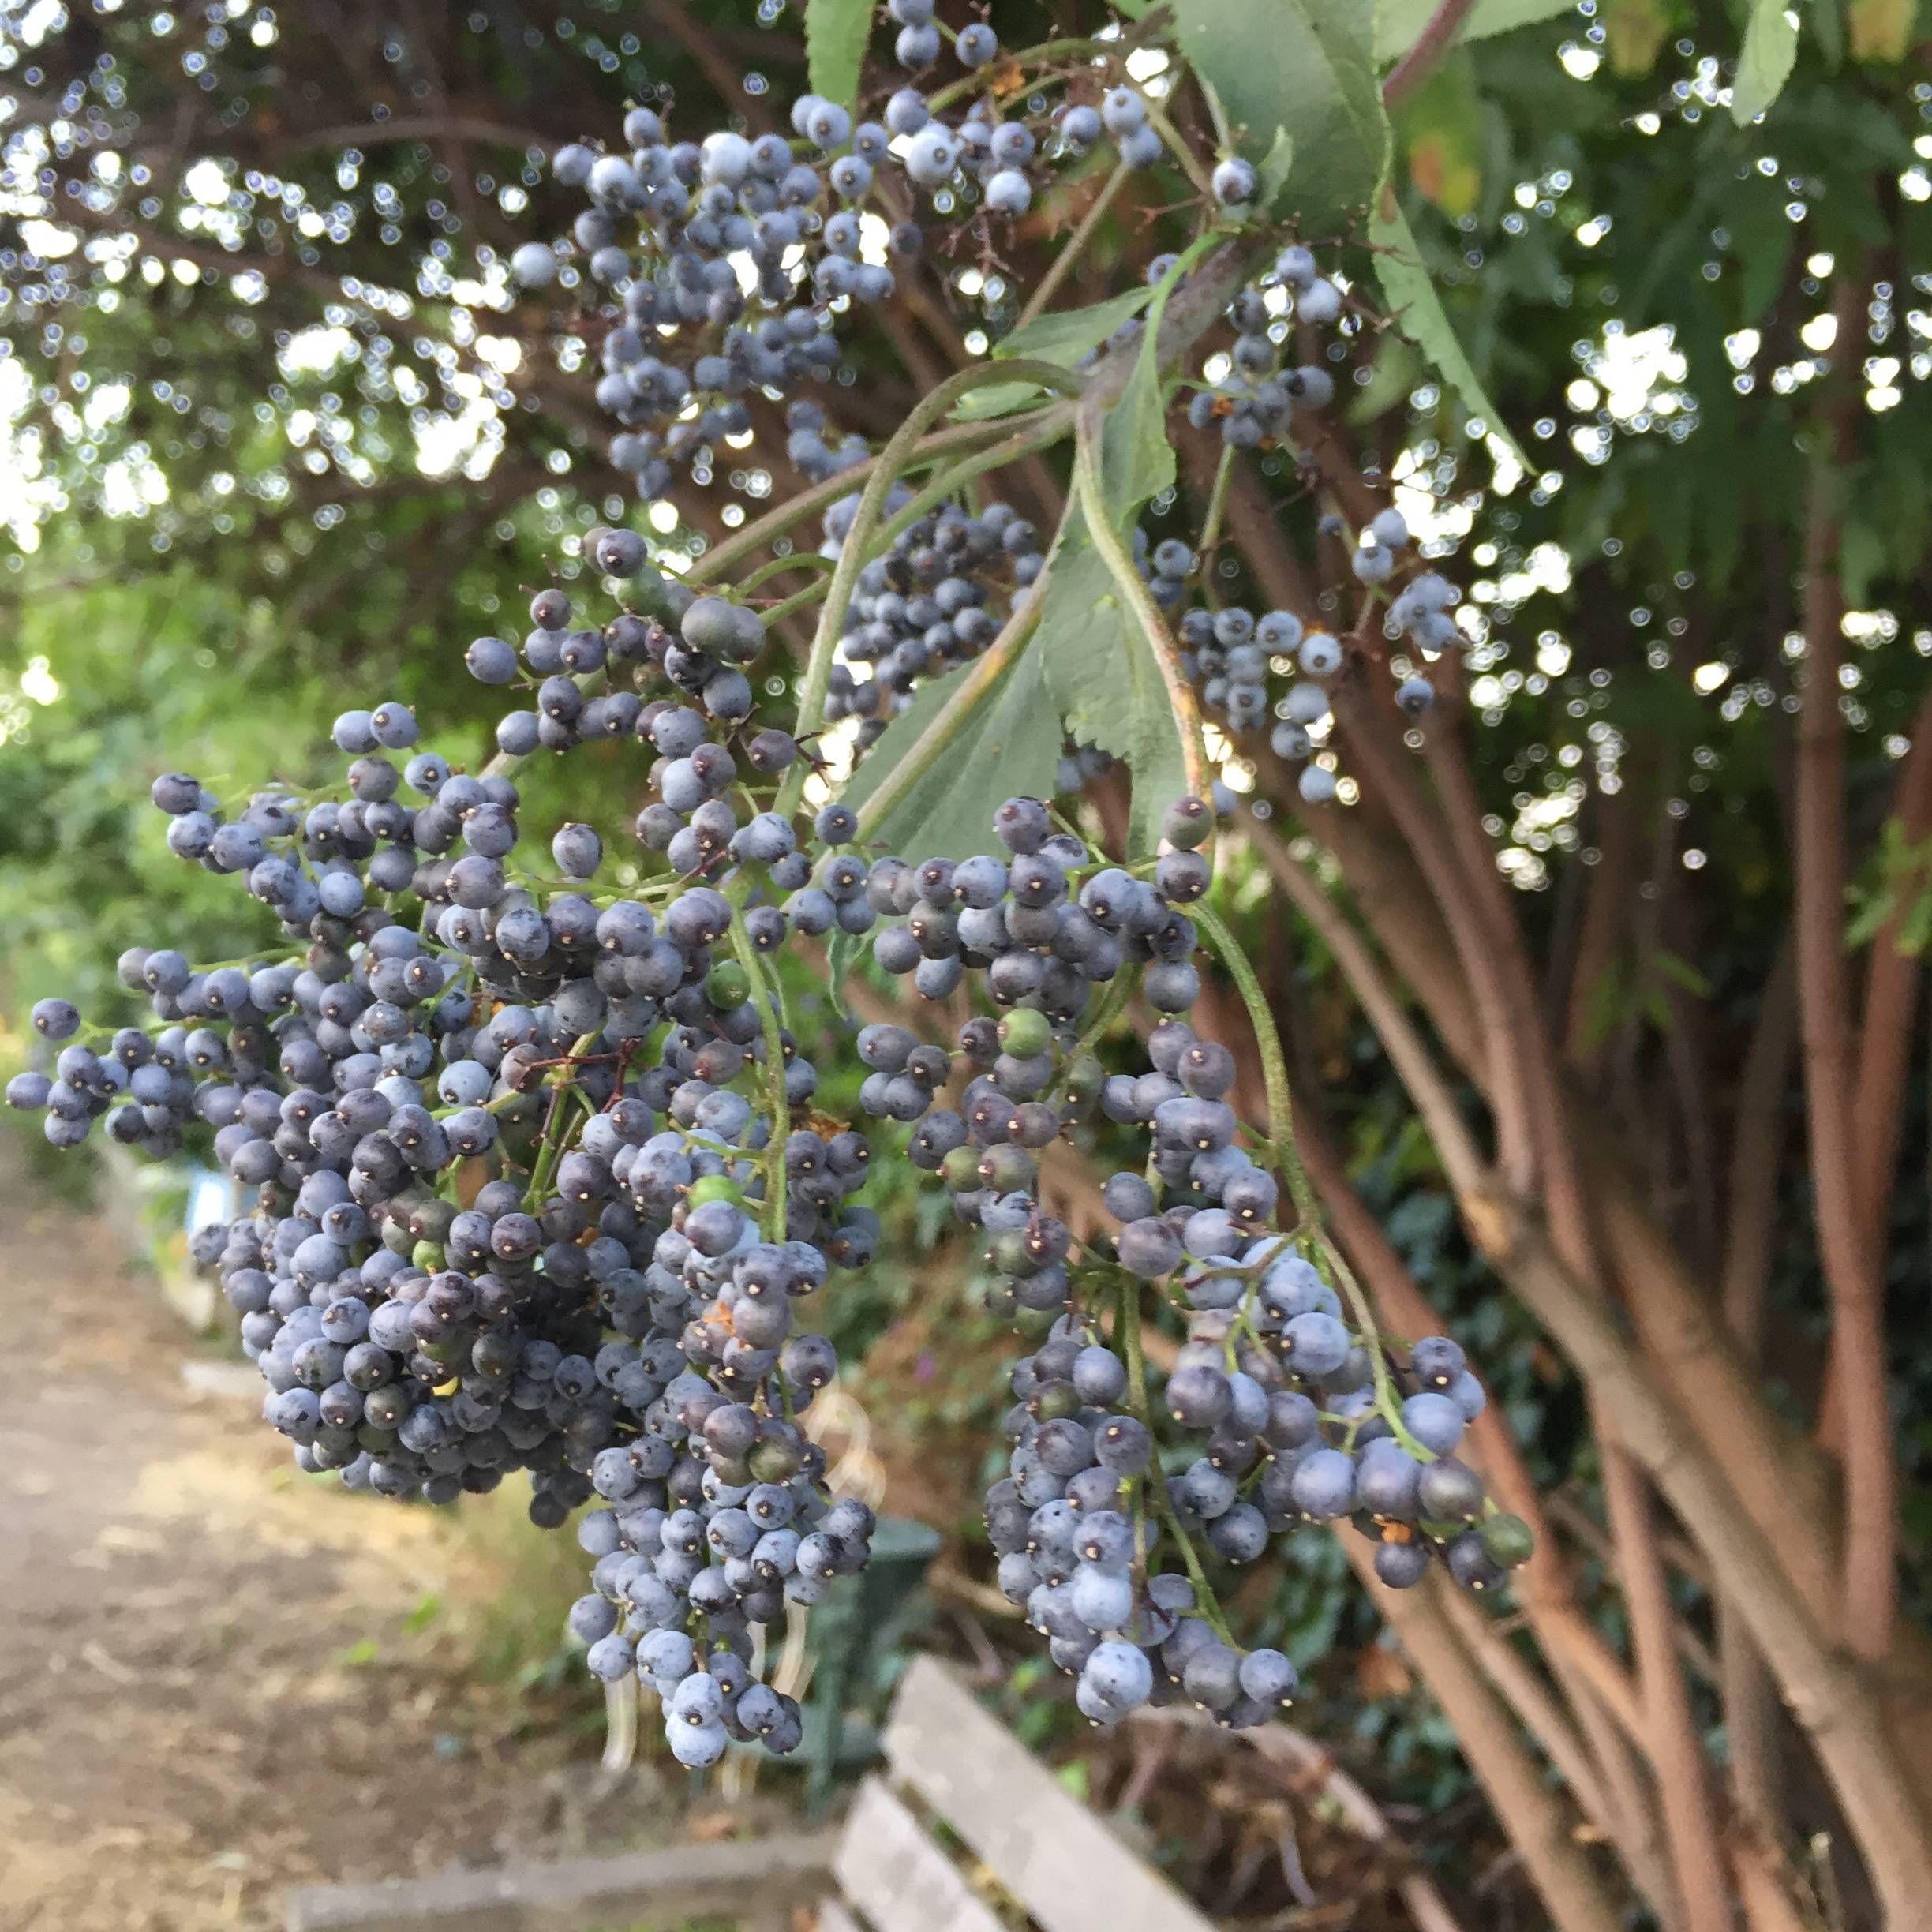 Elderberry can be taken as a delicious syrup all season long to fend off colds.